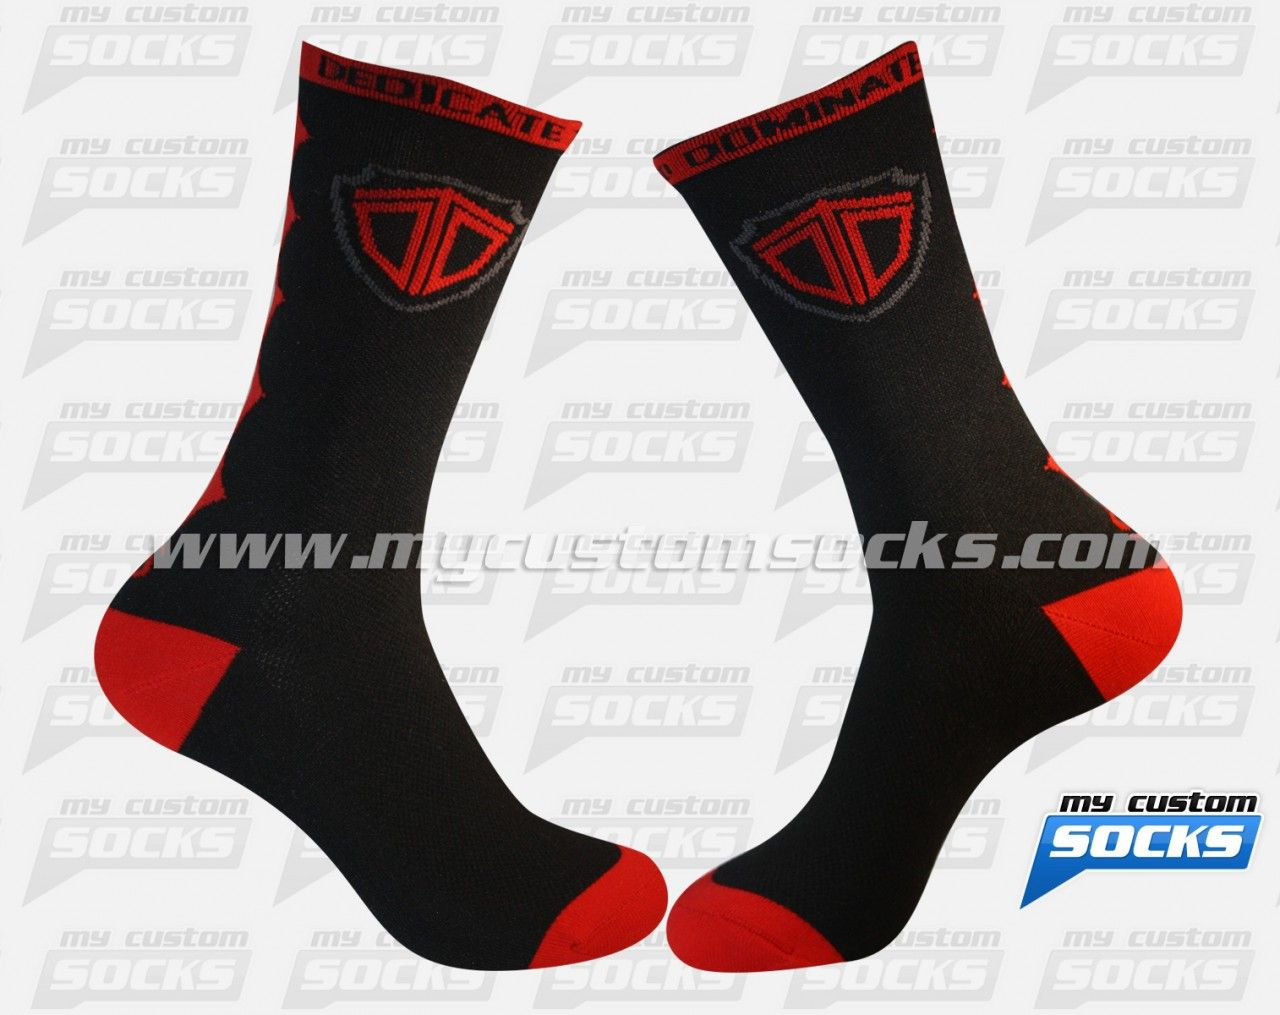 Elite Style socks designed by My Custom Socks for DDT in Jensen Beach, Florida. Multisport socks made with Coolmax fabric. #Multisport custom socks - free quote! ////// Calcetas estilo Elite diseñadas por My Custom Socks para DDT en Jensen Beach, Florida. Calcetas para Multideporte hechas con tela Coolmax. #Multideporte calcetas personalizadas - cotización gratis! www.mycustomsocks.com